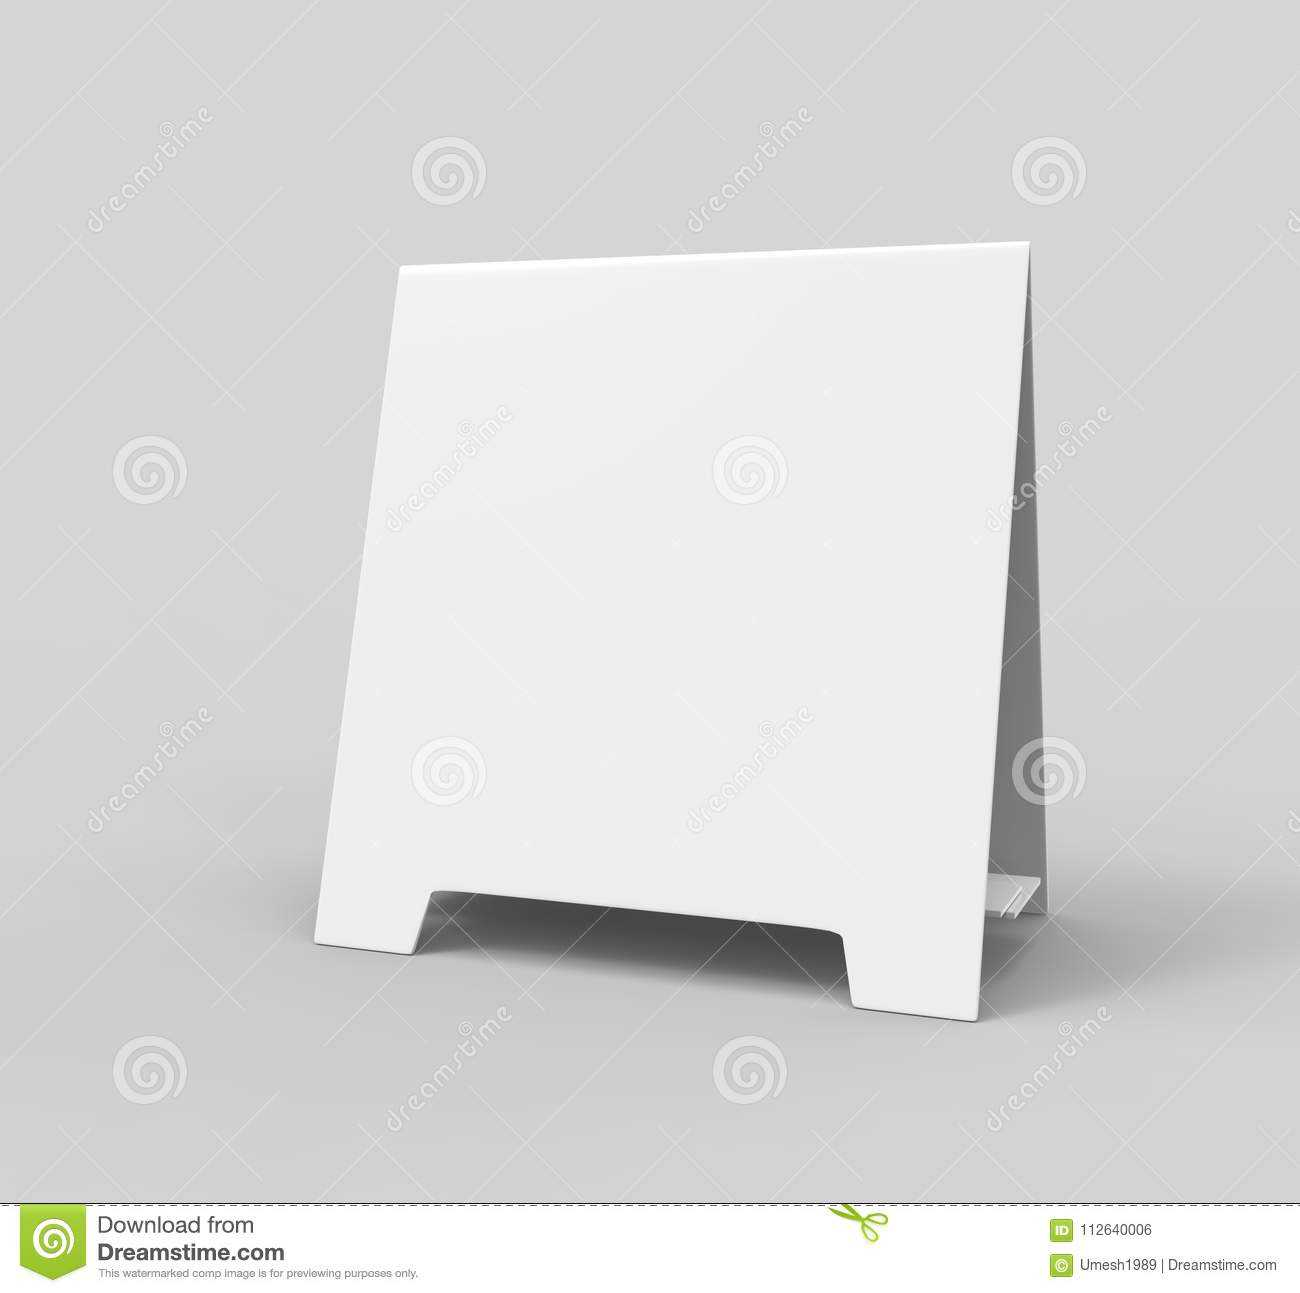 Tablet Tent Card Talkers Promotional Menu Card White Blank In Blank Tent Card Template